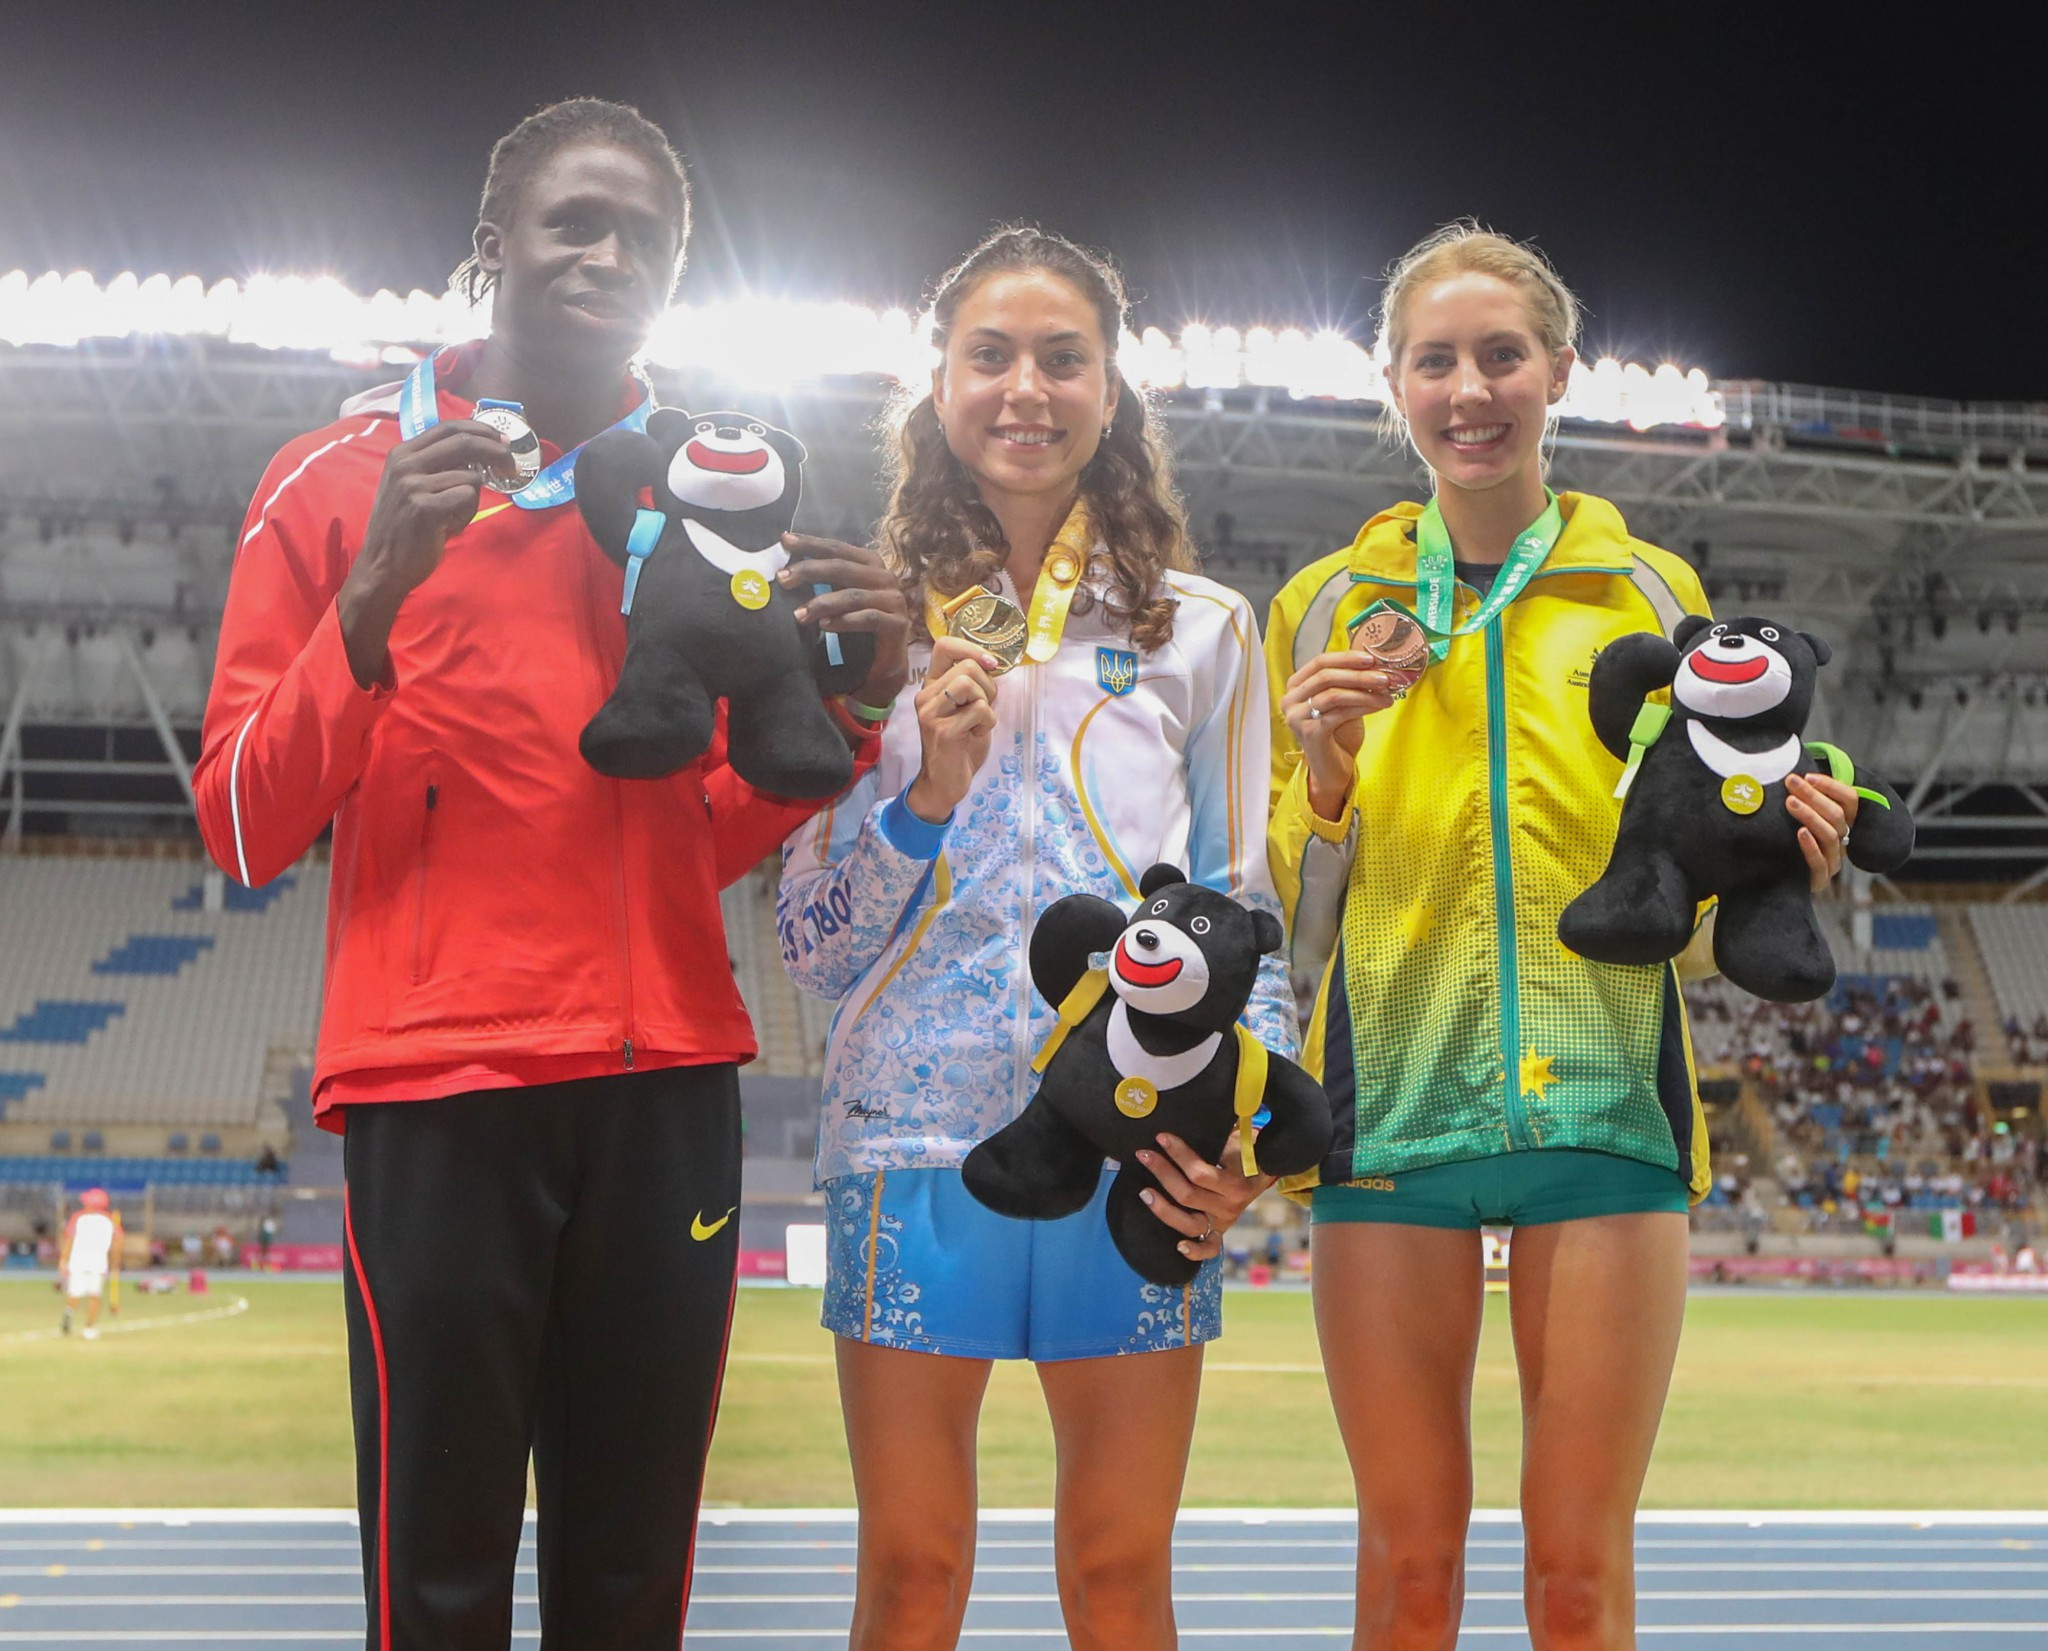 Olga Liakhova, centre, received the women's 800m gold at the medal ceremony before Cuba's Rose Almanza Blanco was reinstated ©Taipei 2017